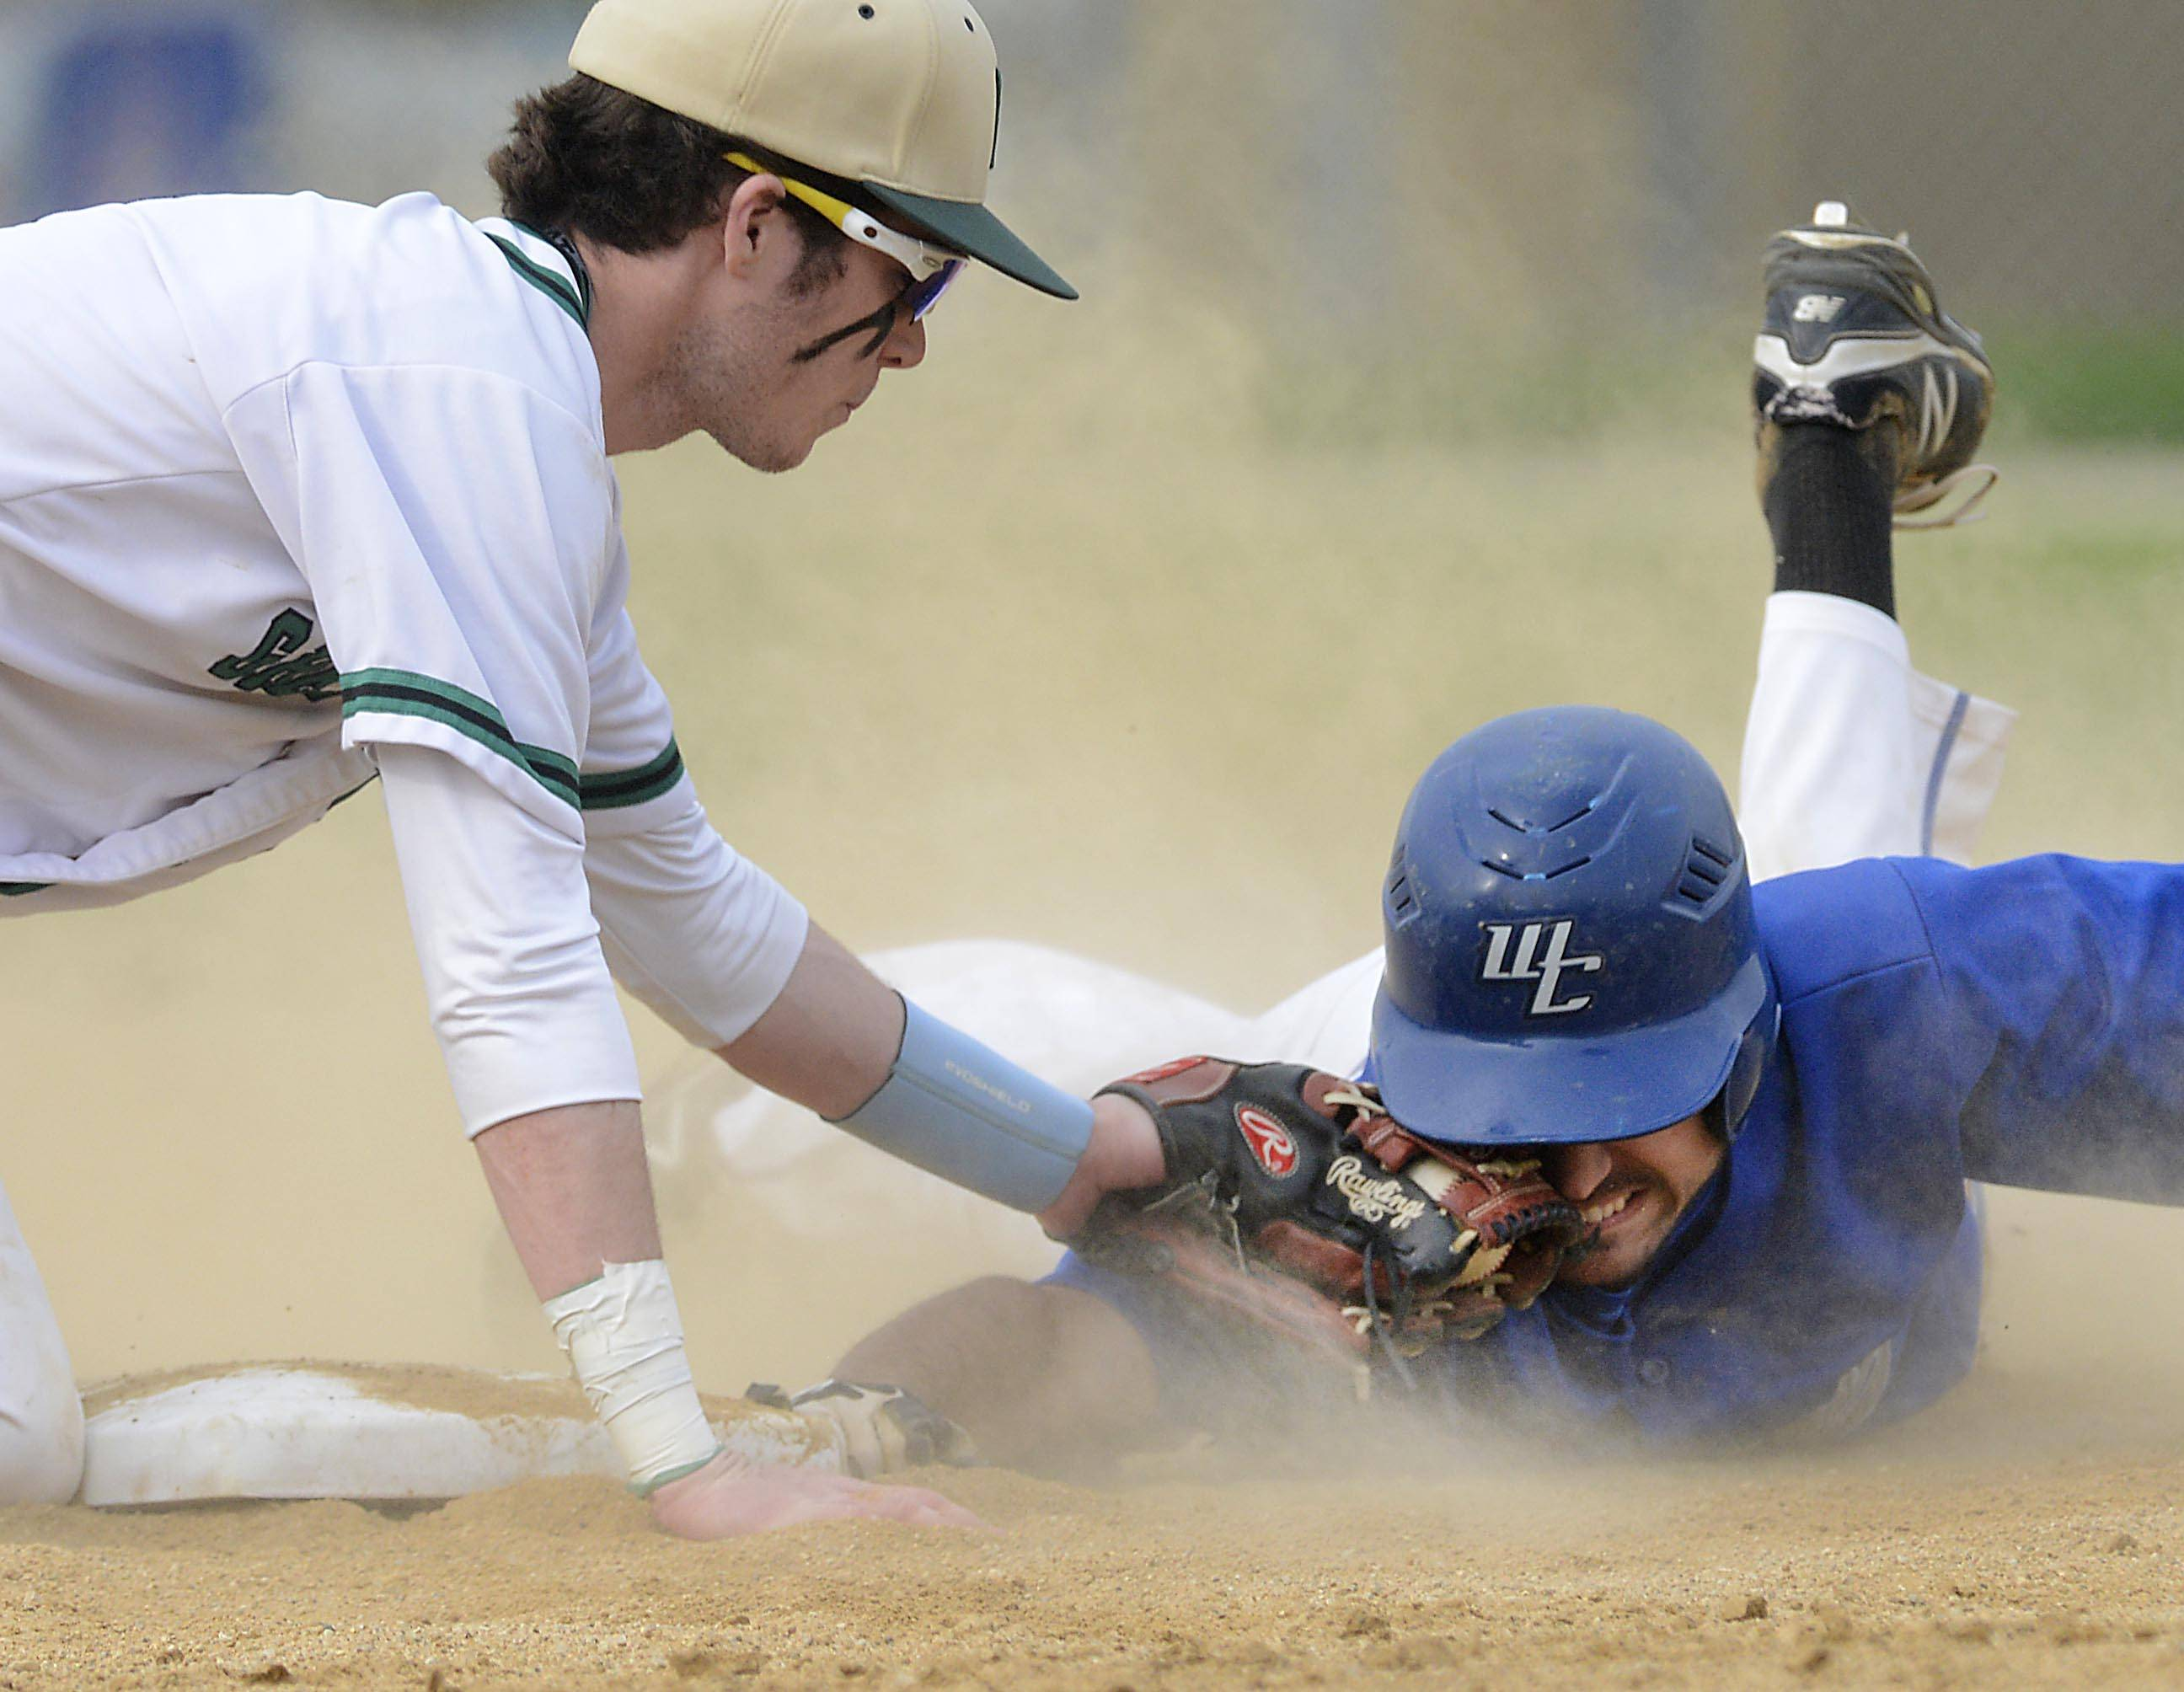 St. Edward's Ryan Nudd tags Westminster Christian's Frankie Angiulo in the face Monday in the Class 2A regional game at Wing Park in Elgin. Angiulo was called safe and a run scored in the third inning.